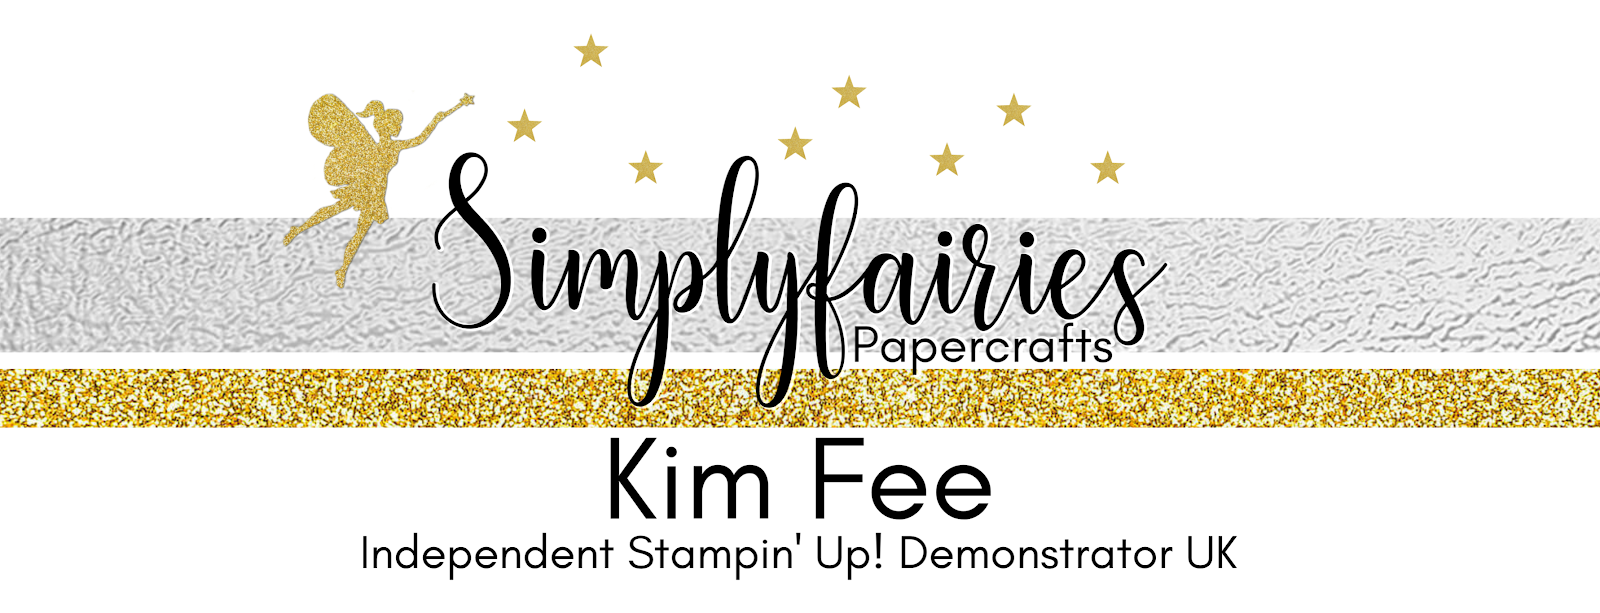 Simplyfairies Stampin' Up! Independent Demonstrator Kim Fee | ORDER STAMPIN' UP! HERE ONLINE 24/7